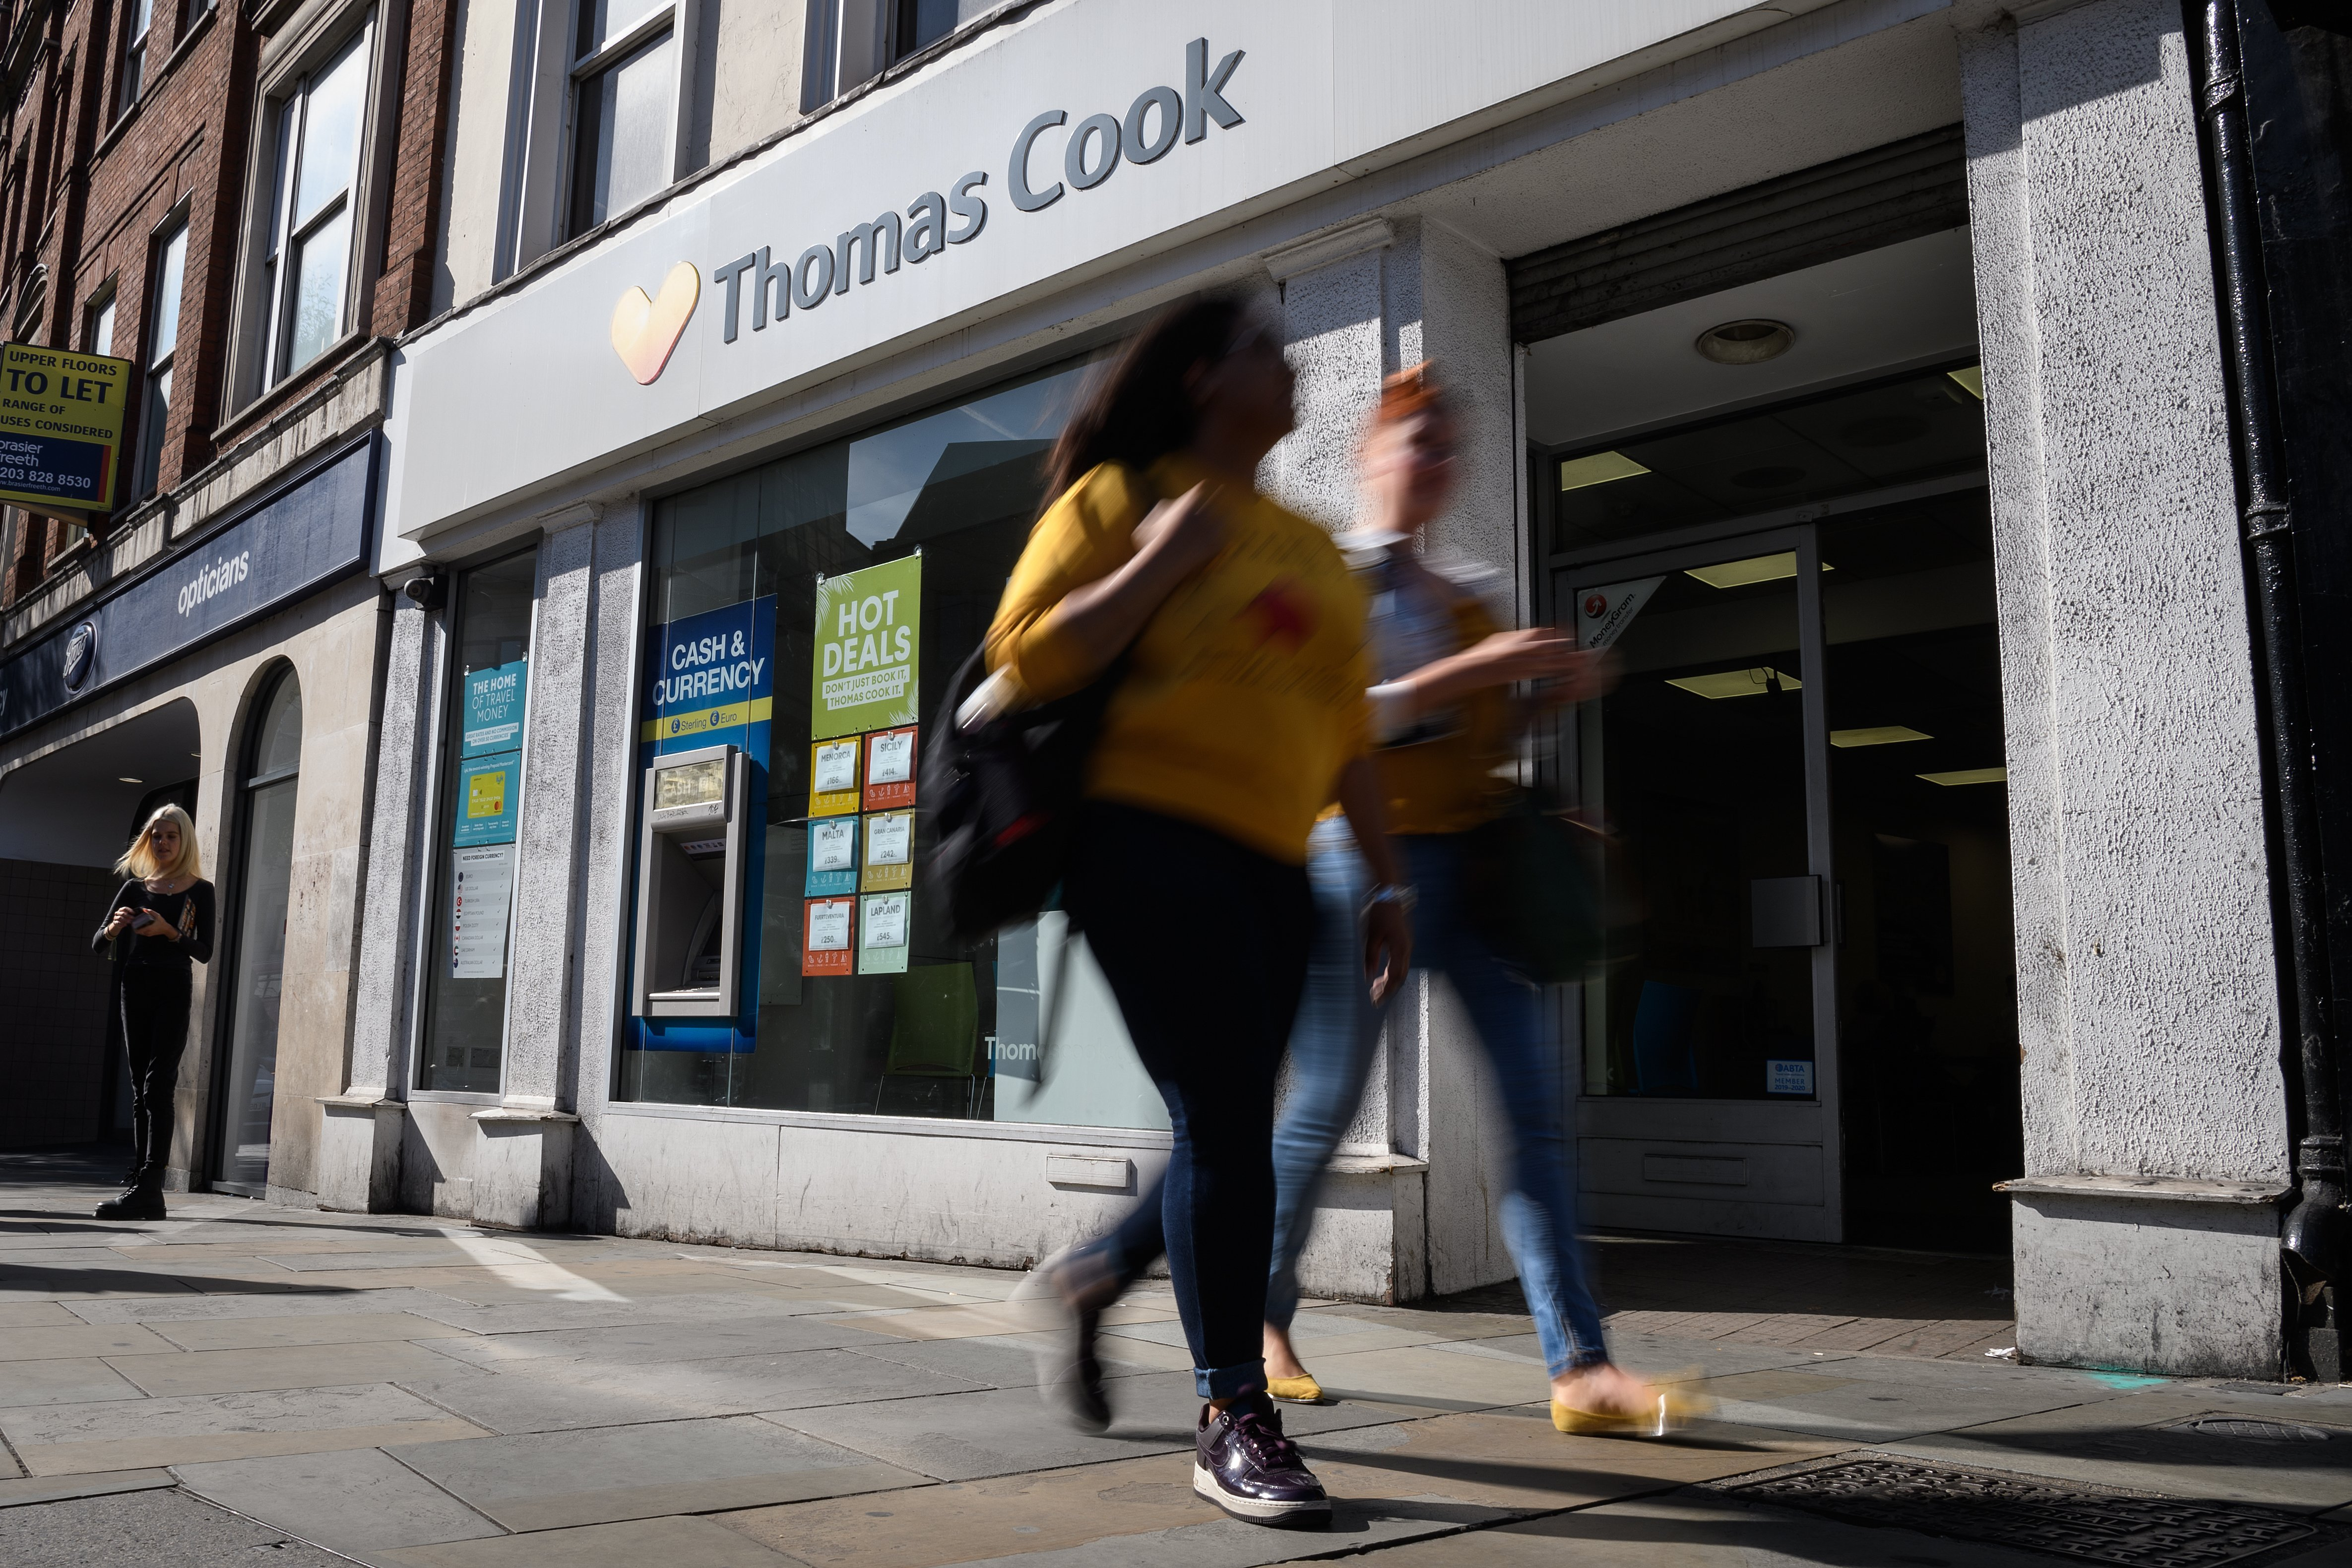 Tourists face nerve-racking wait as travel firm Thomas Cook teeters on brink of collapse